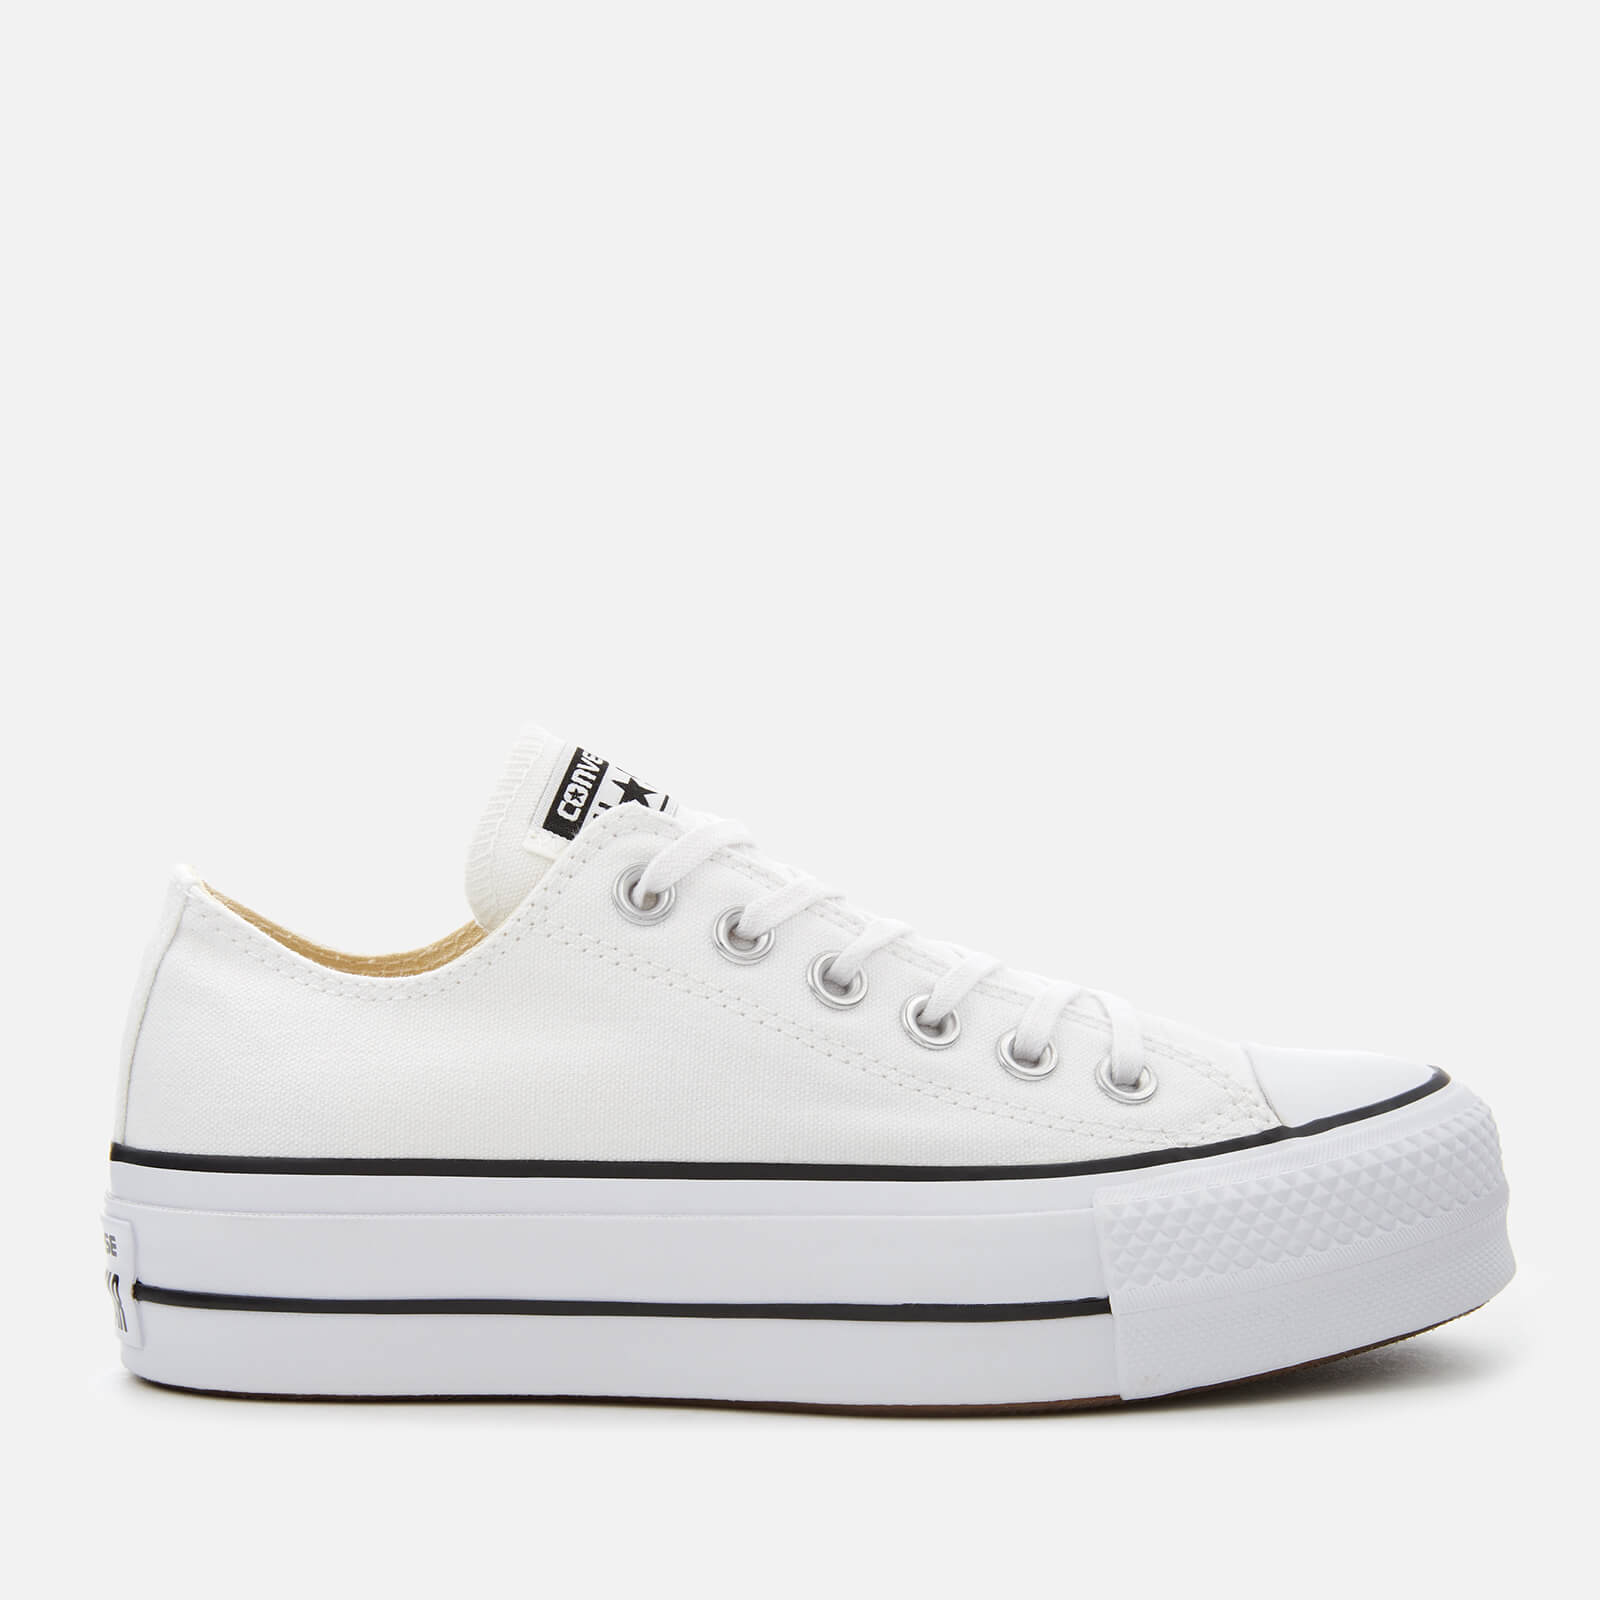 df3c4e9bf928 Converse Women s Chuck Taylor All Star Lift Ox Trainers - White Black Womens  Footwear